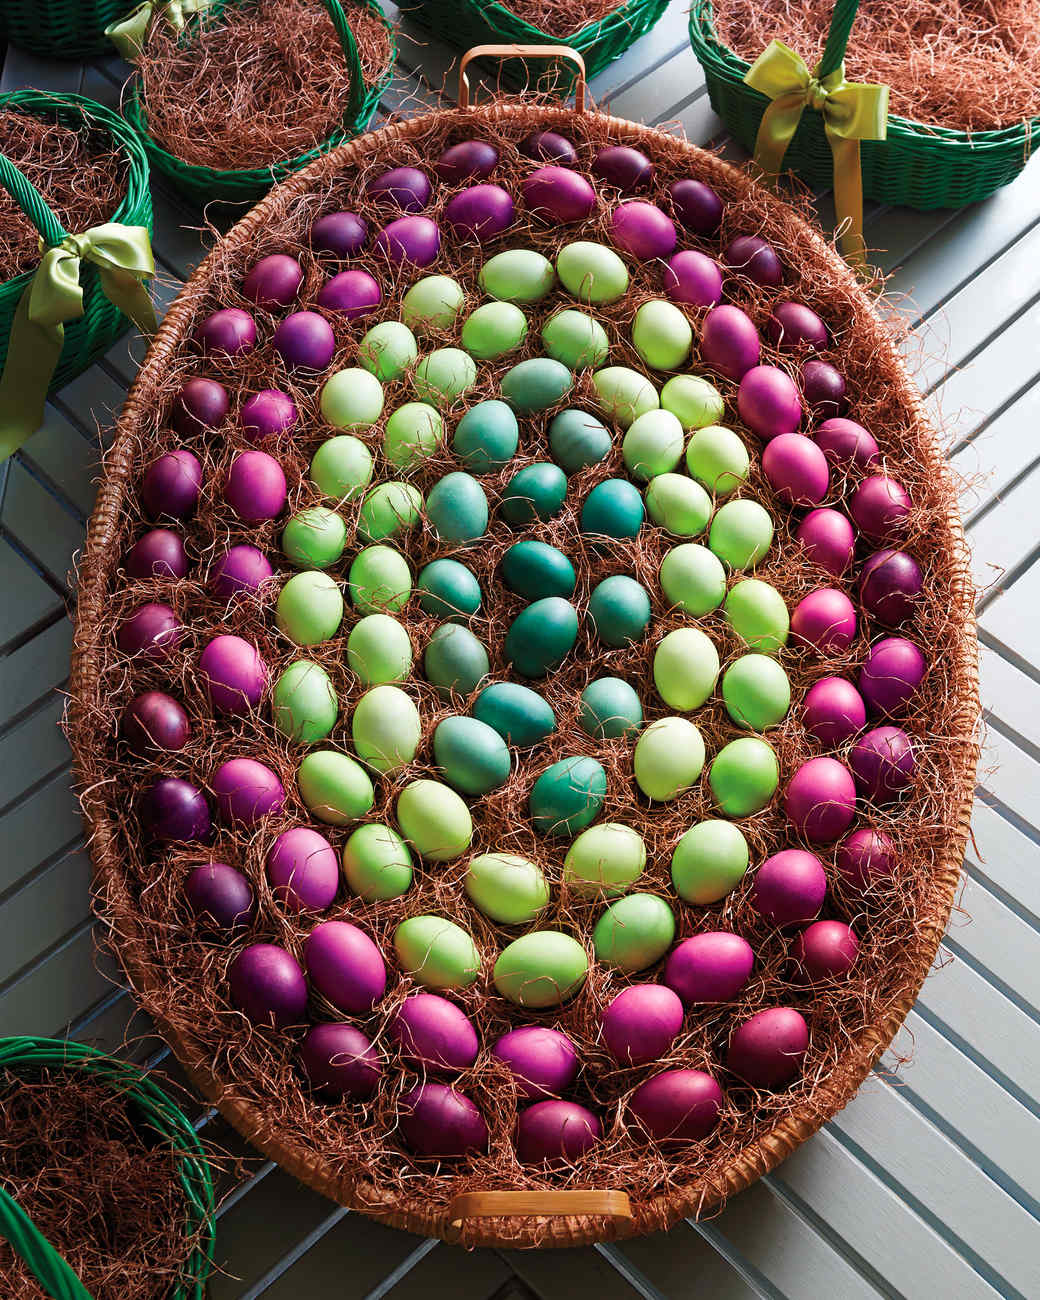 easter-egg-baskets-0029-d111341.jpg